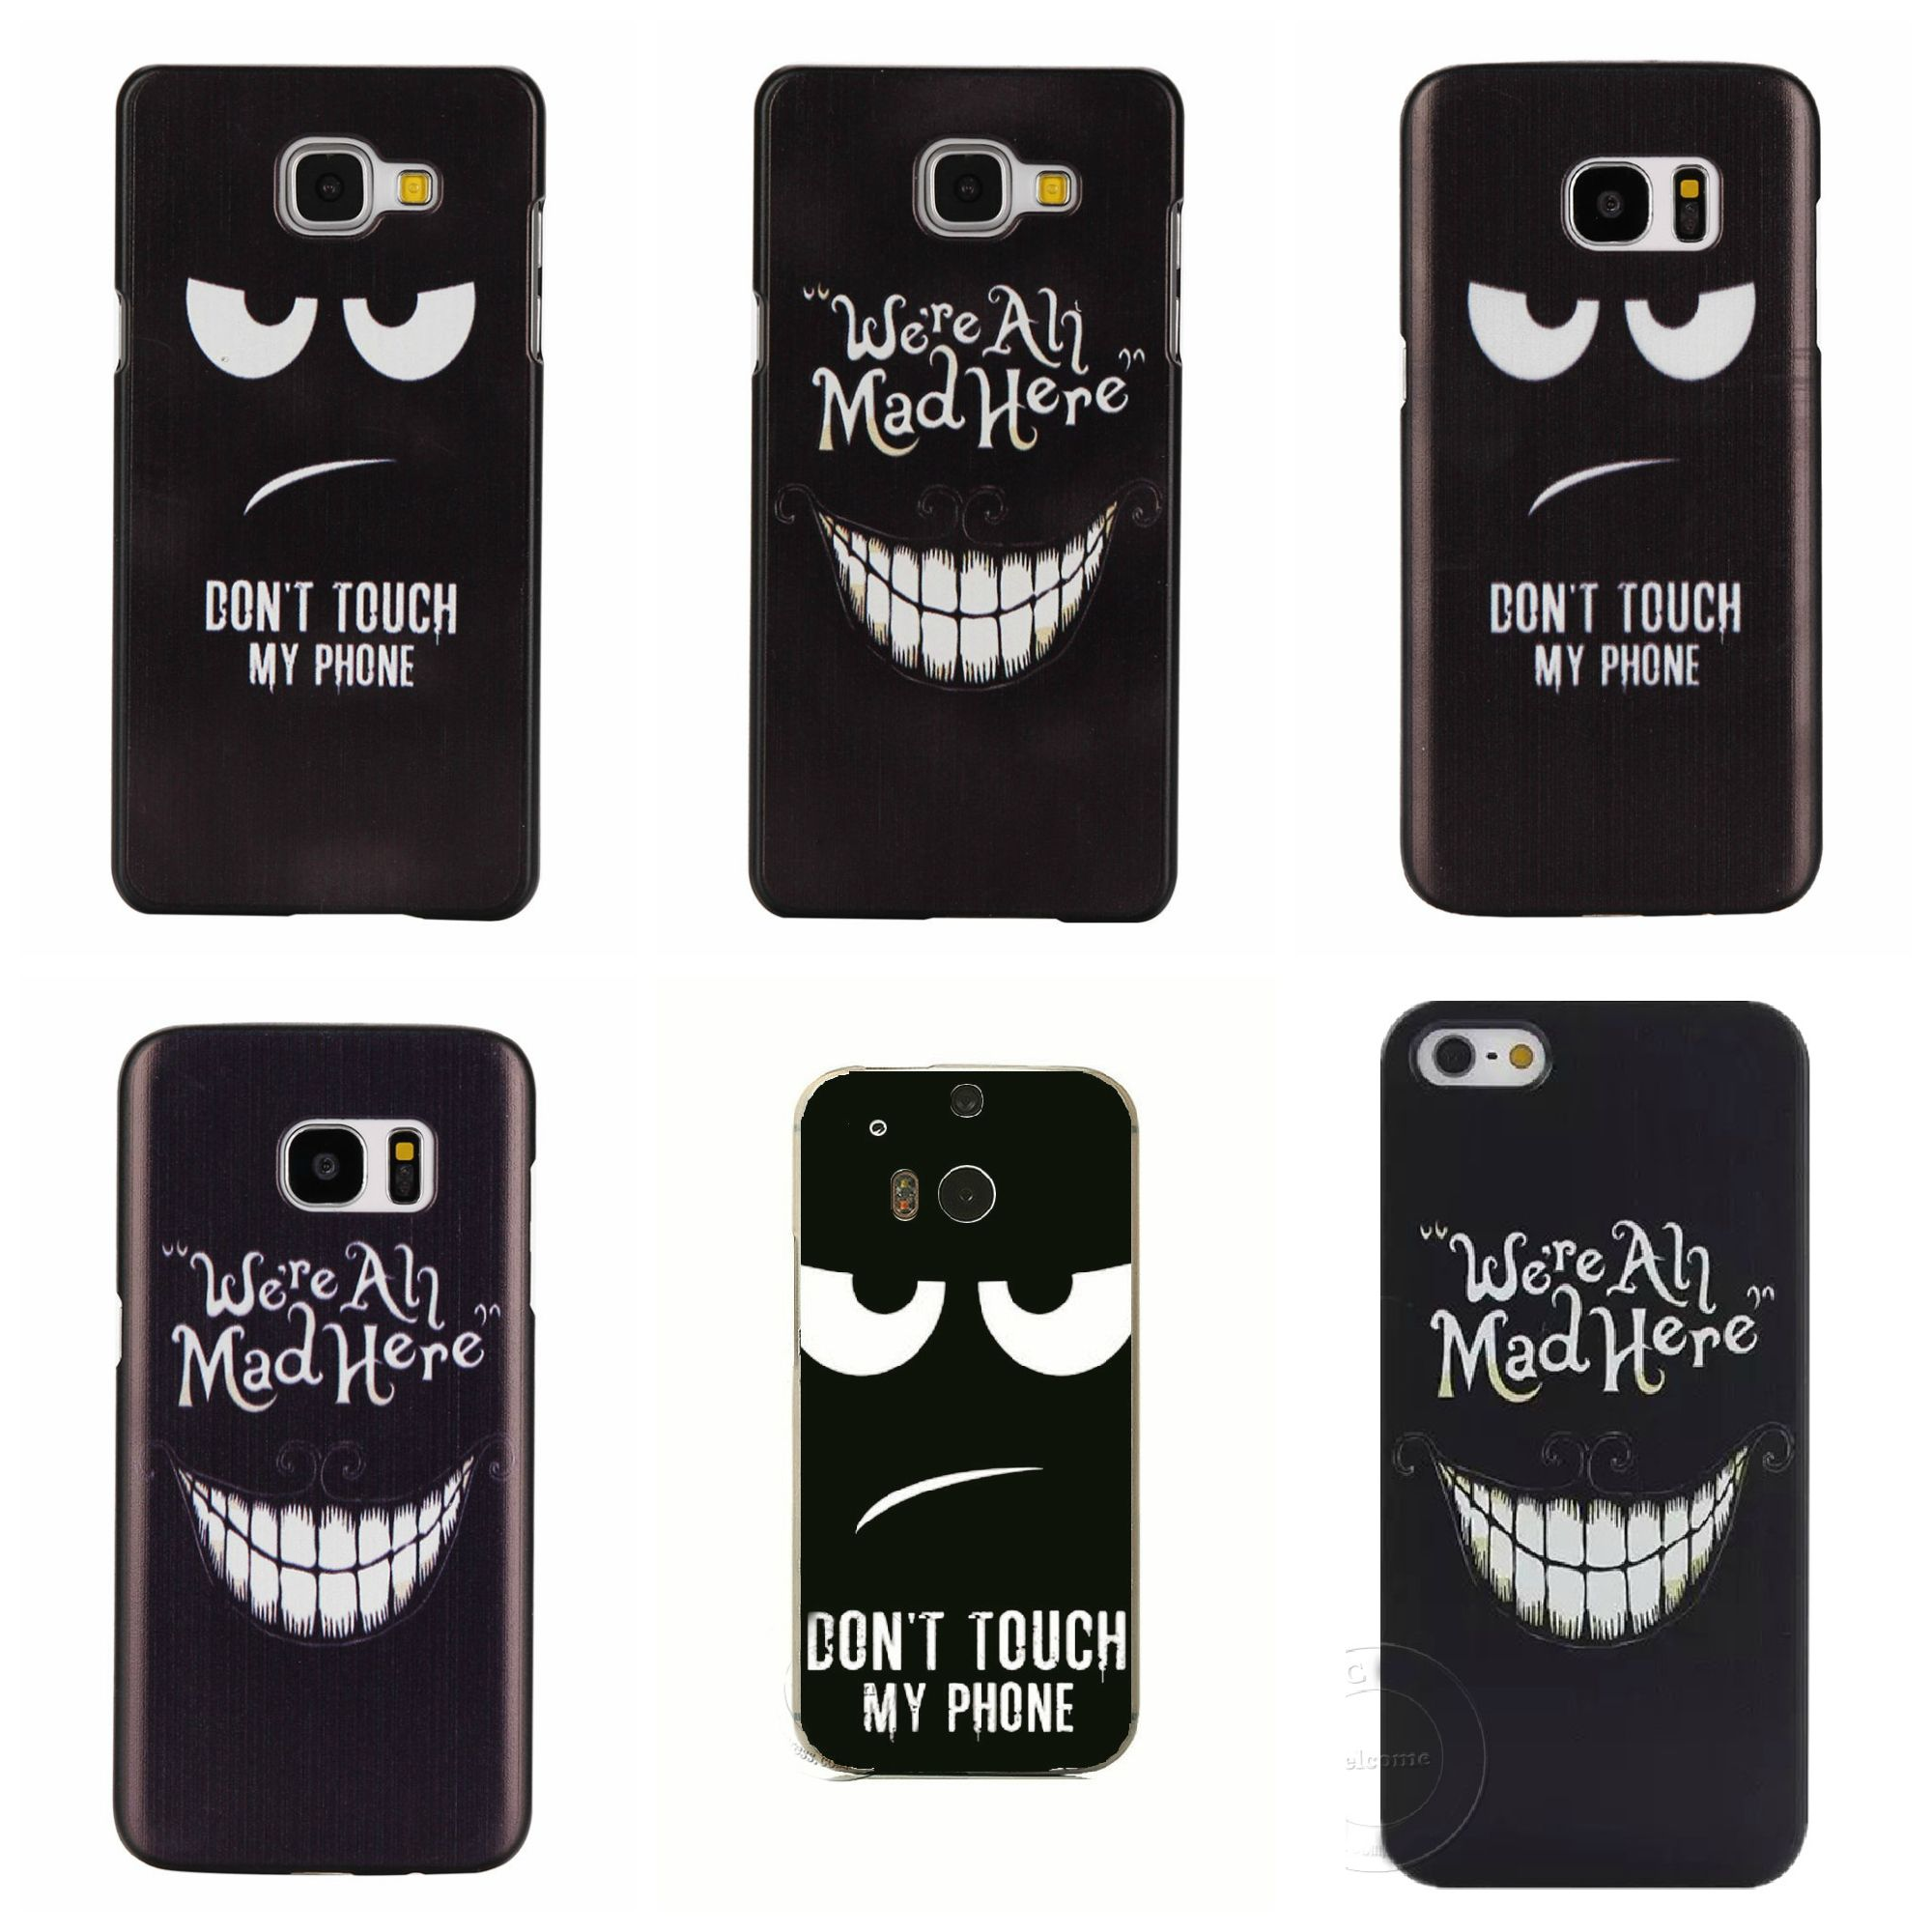 S5 A5 A3 2016 We Are All Mad Here Don Harga Samsung